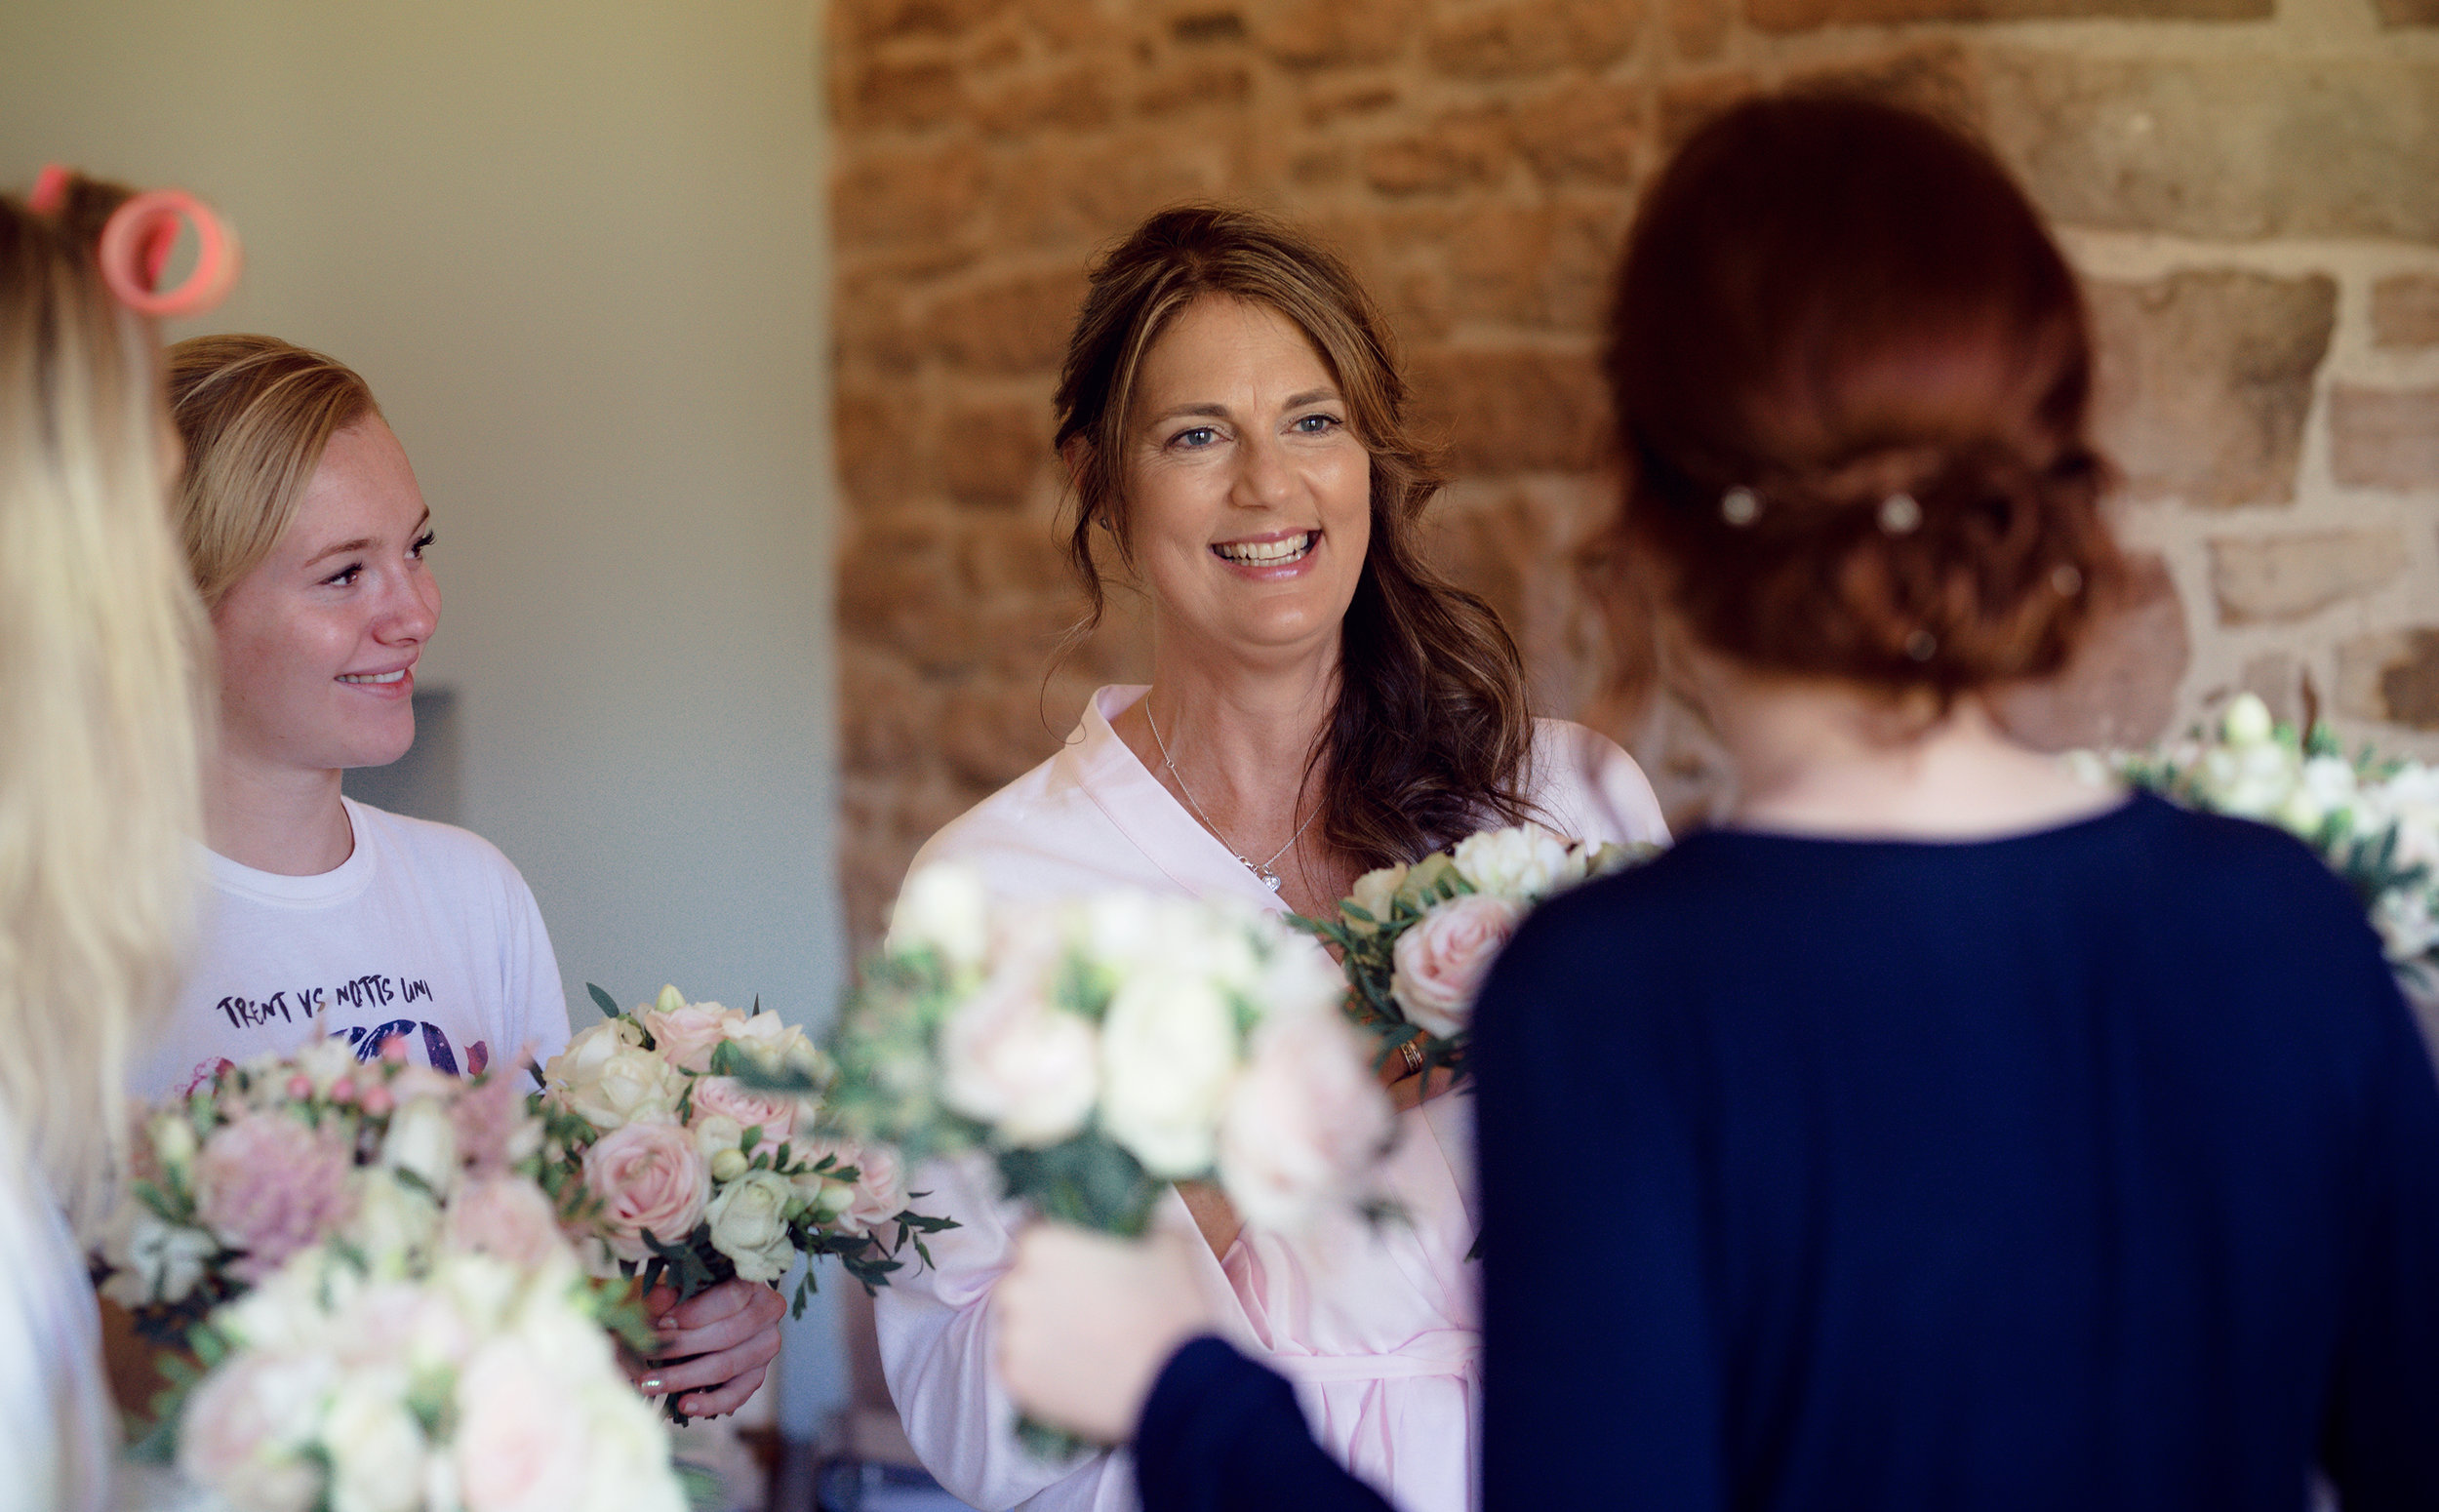 The mother of the bride having a good laugh